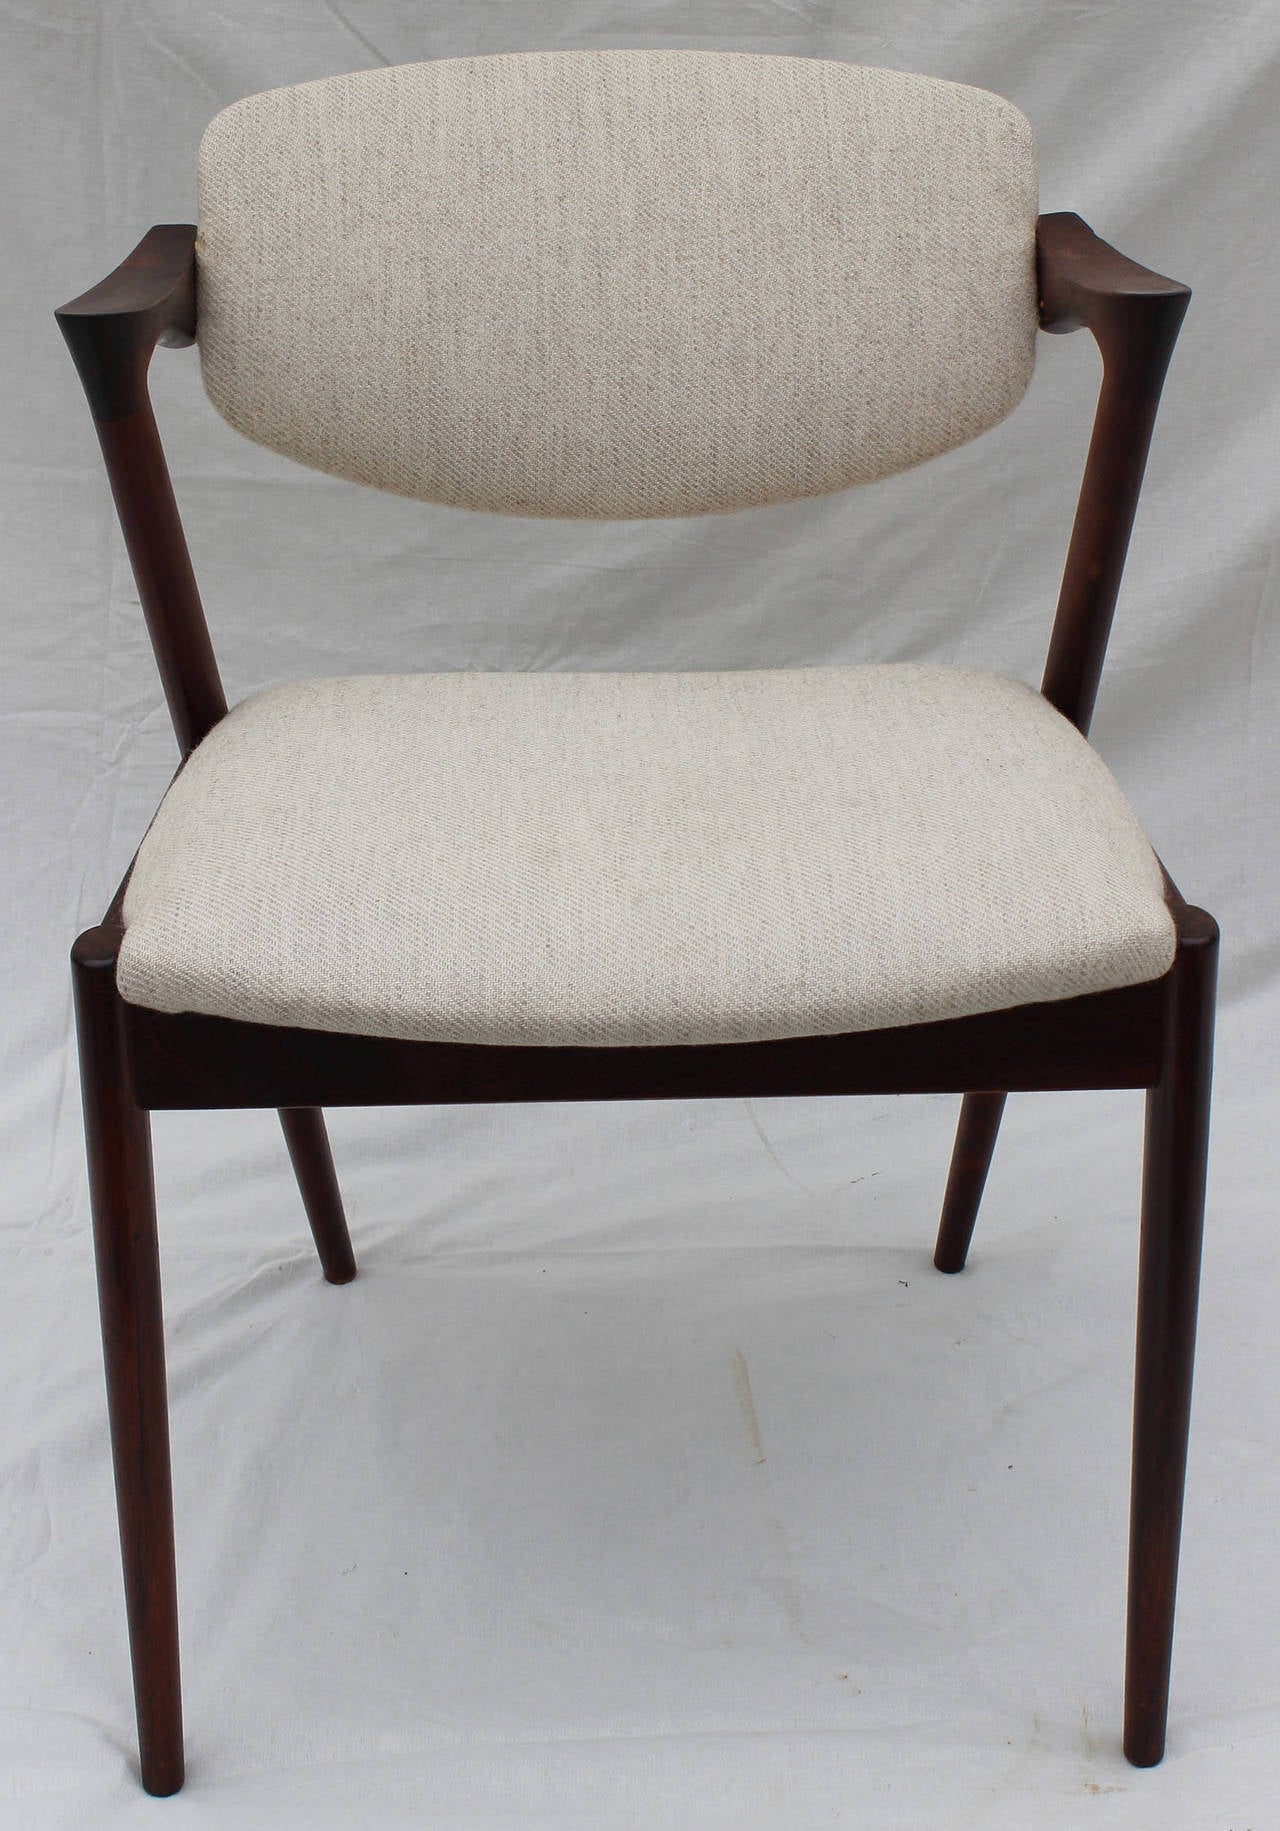 Six kai kristiansen rosewood dining chairs at 1stdibs - Kai kristiansen chairs ...